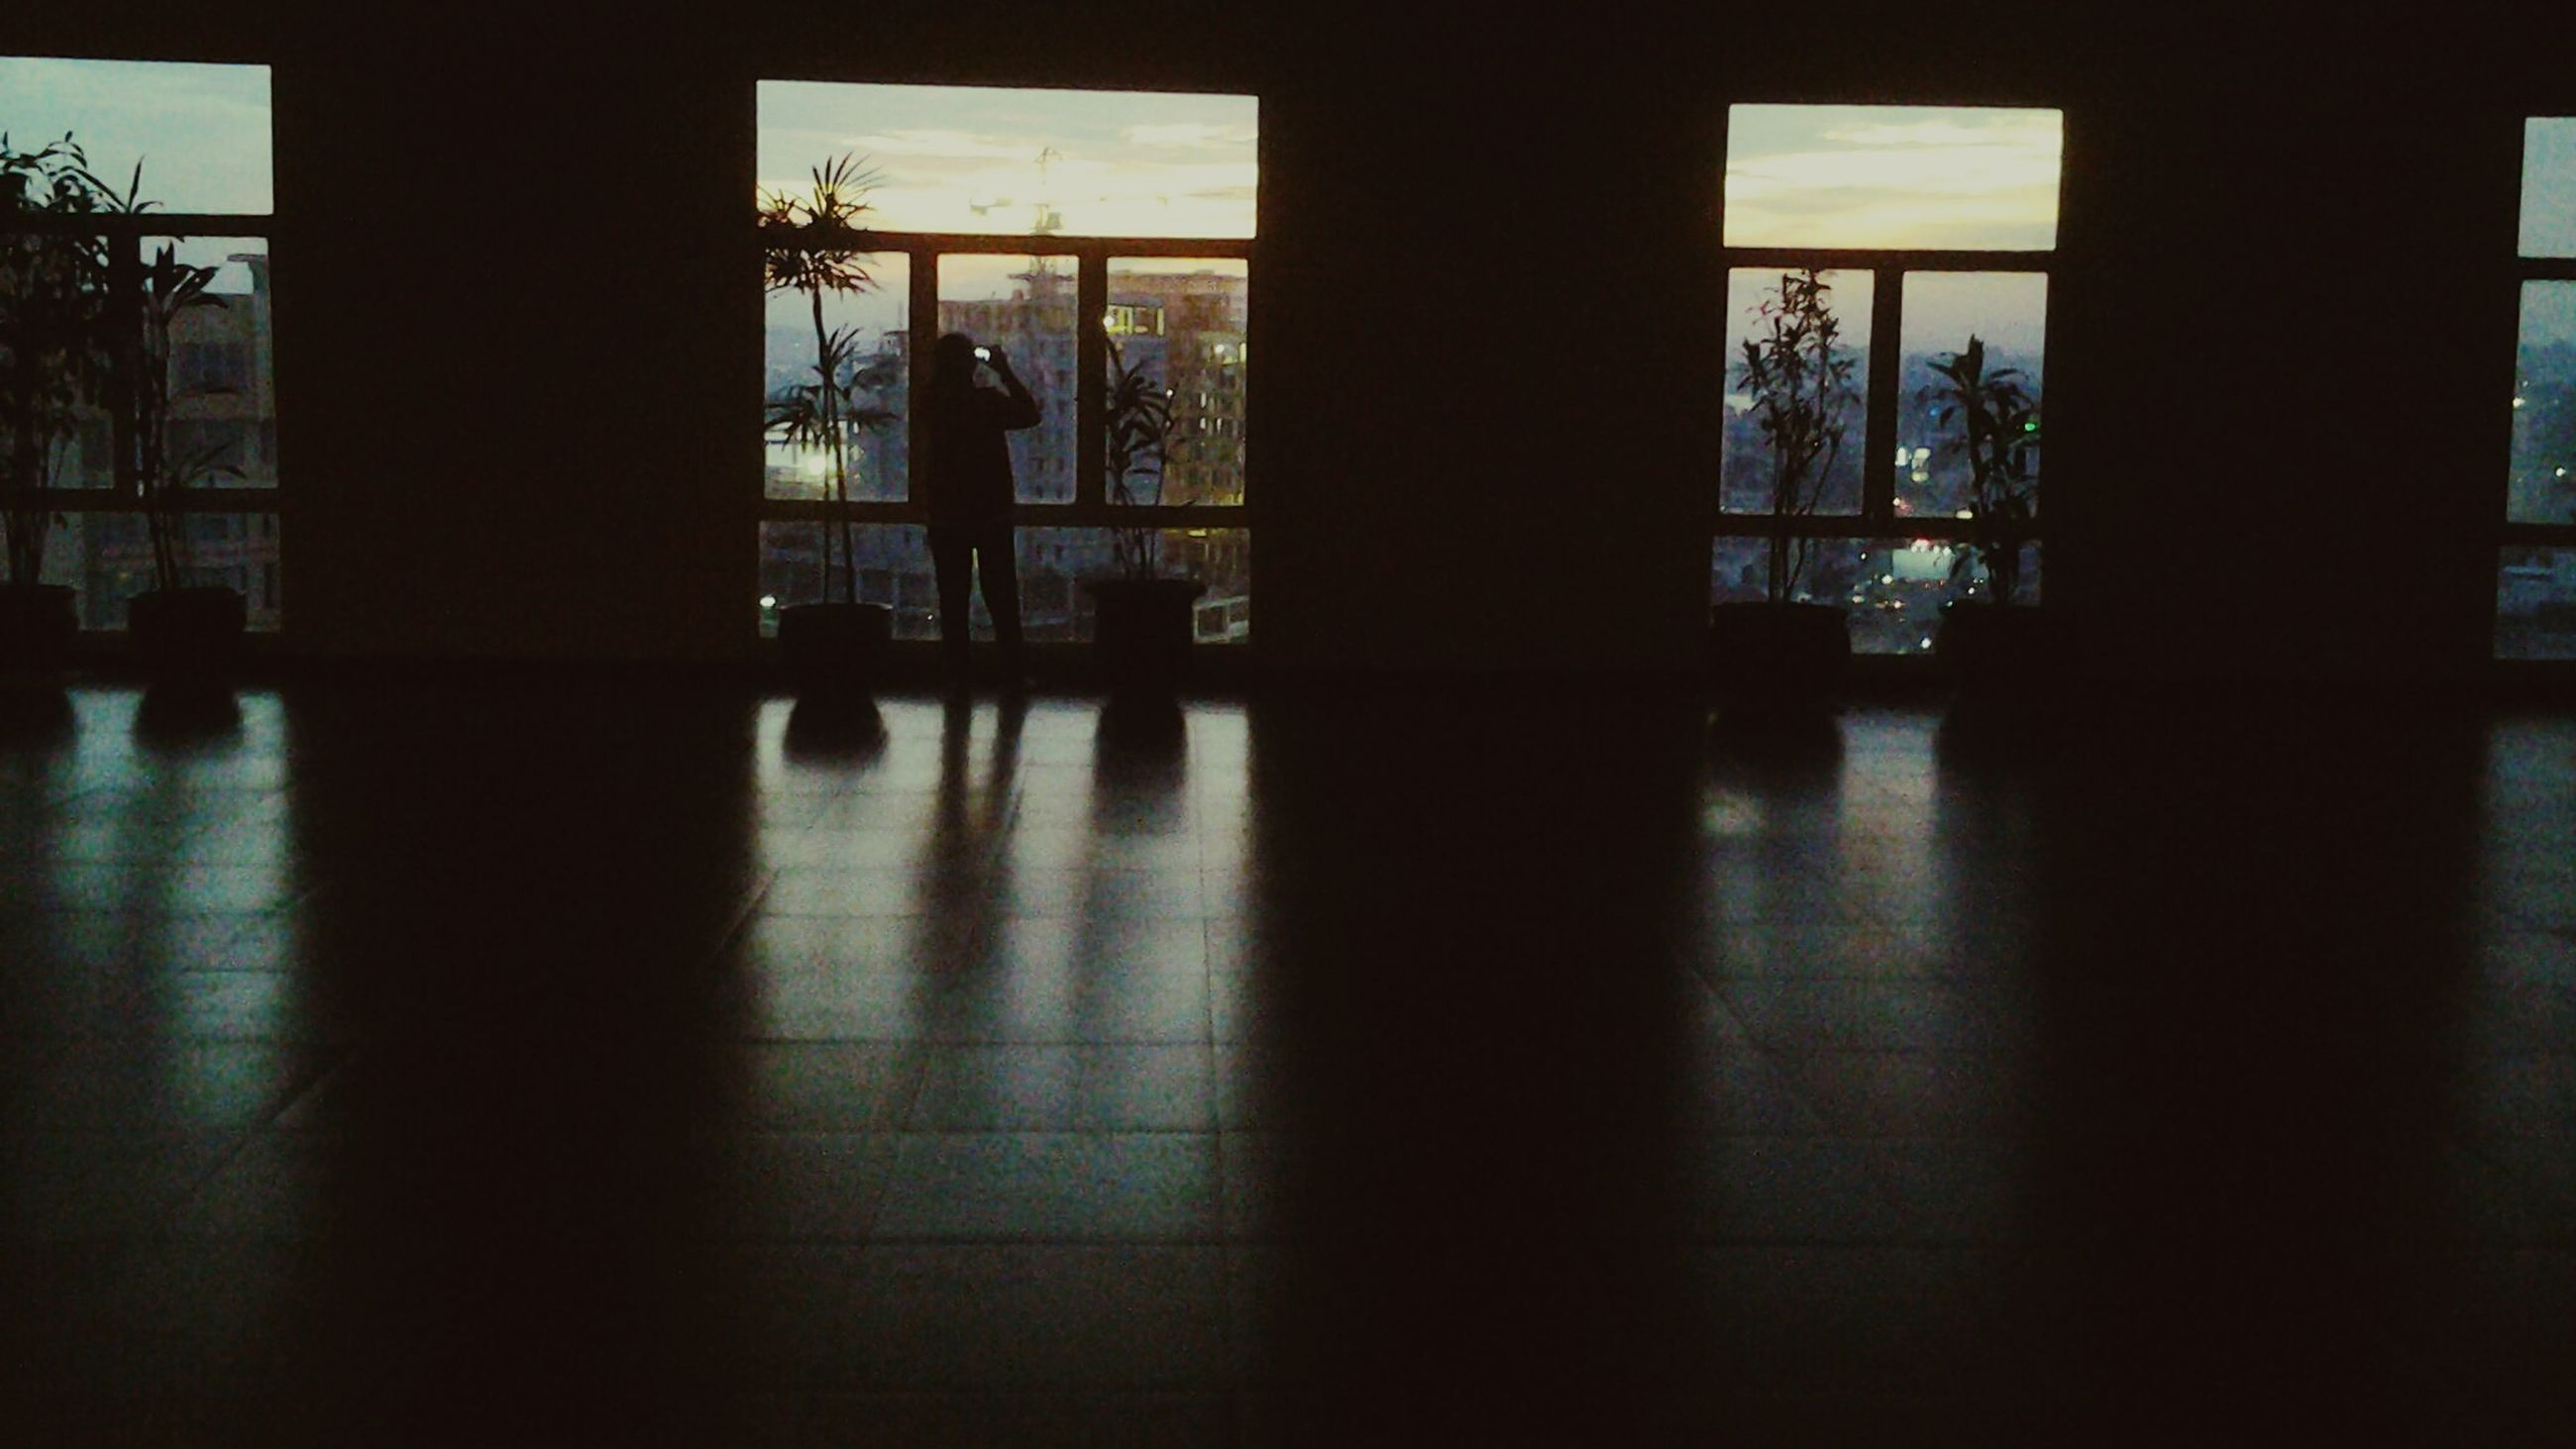 indoors, window, glass - material, architecture, built structure, transparent, flooring, corridor, reflection, door, day, sunlight, architectural column, tiled floor, curtain, home interior, shadow, empty, silhouette, closed